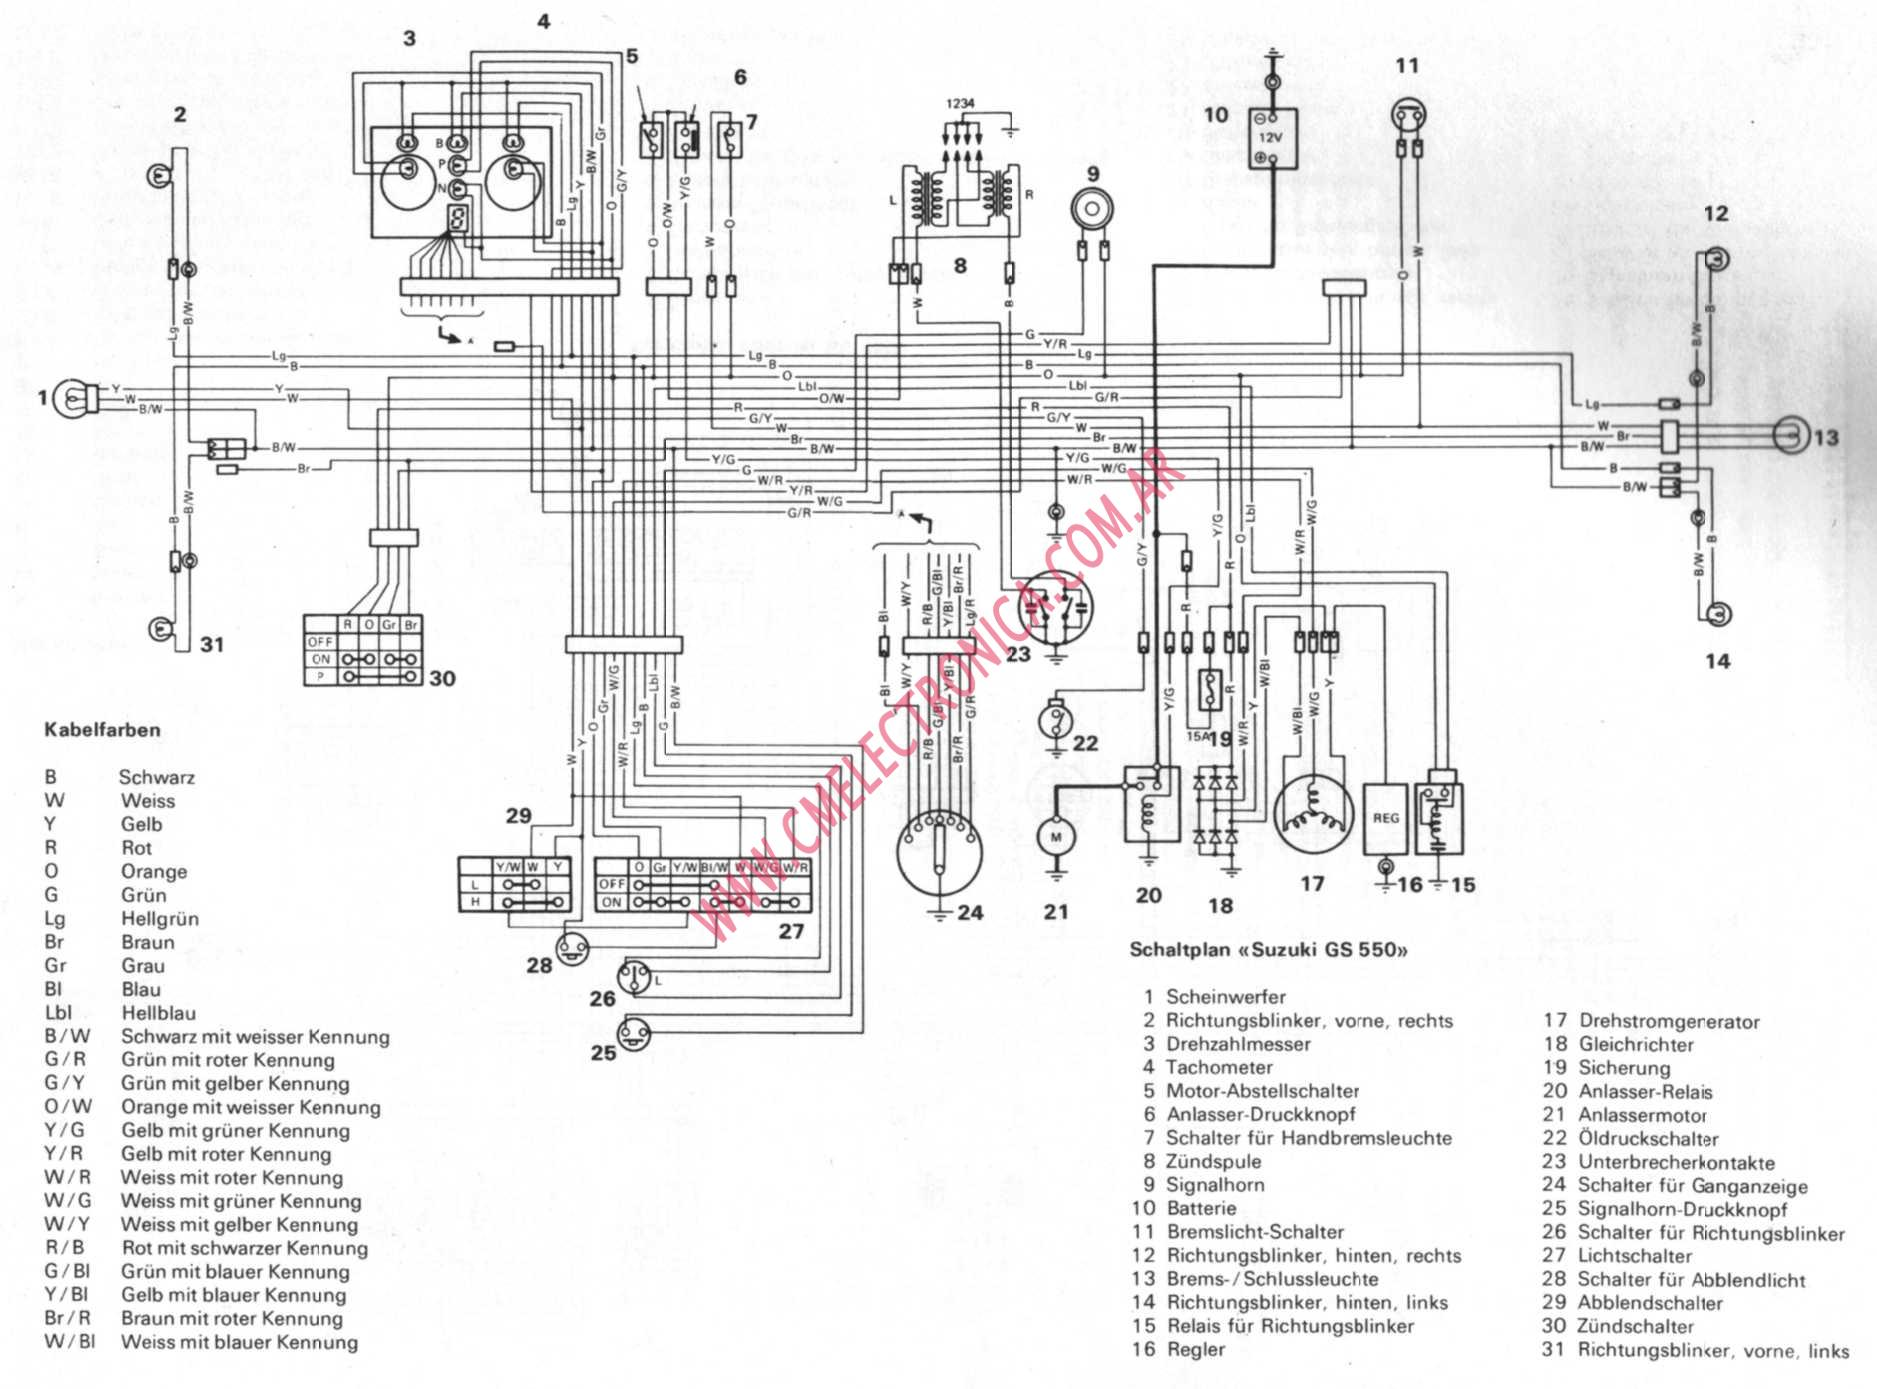 suzuki gs550 suzuki gs550 wiring diagram efcaviation com gs550 wiring diagram at eliteediting.co